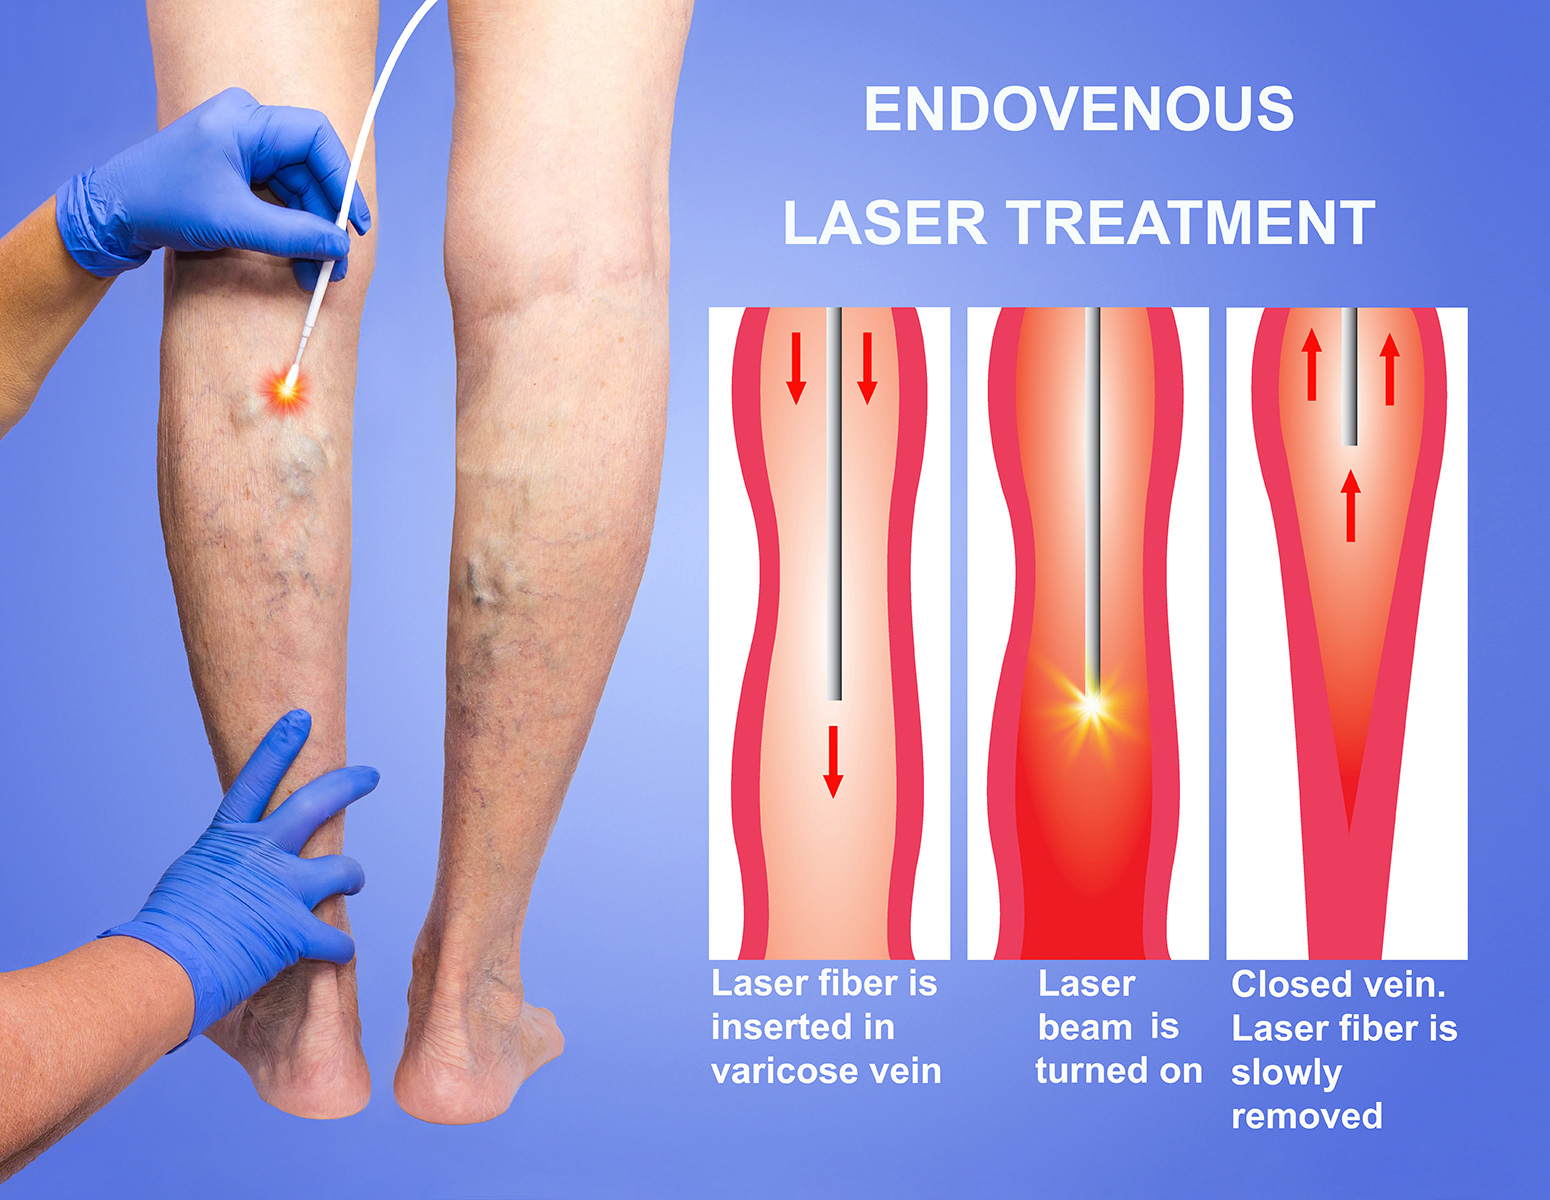 Endo-venous_Laser_Treatment_(EVLT)